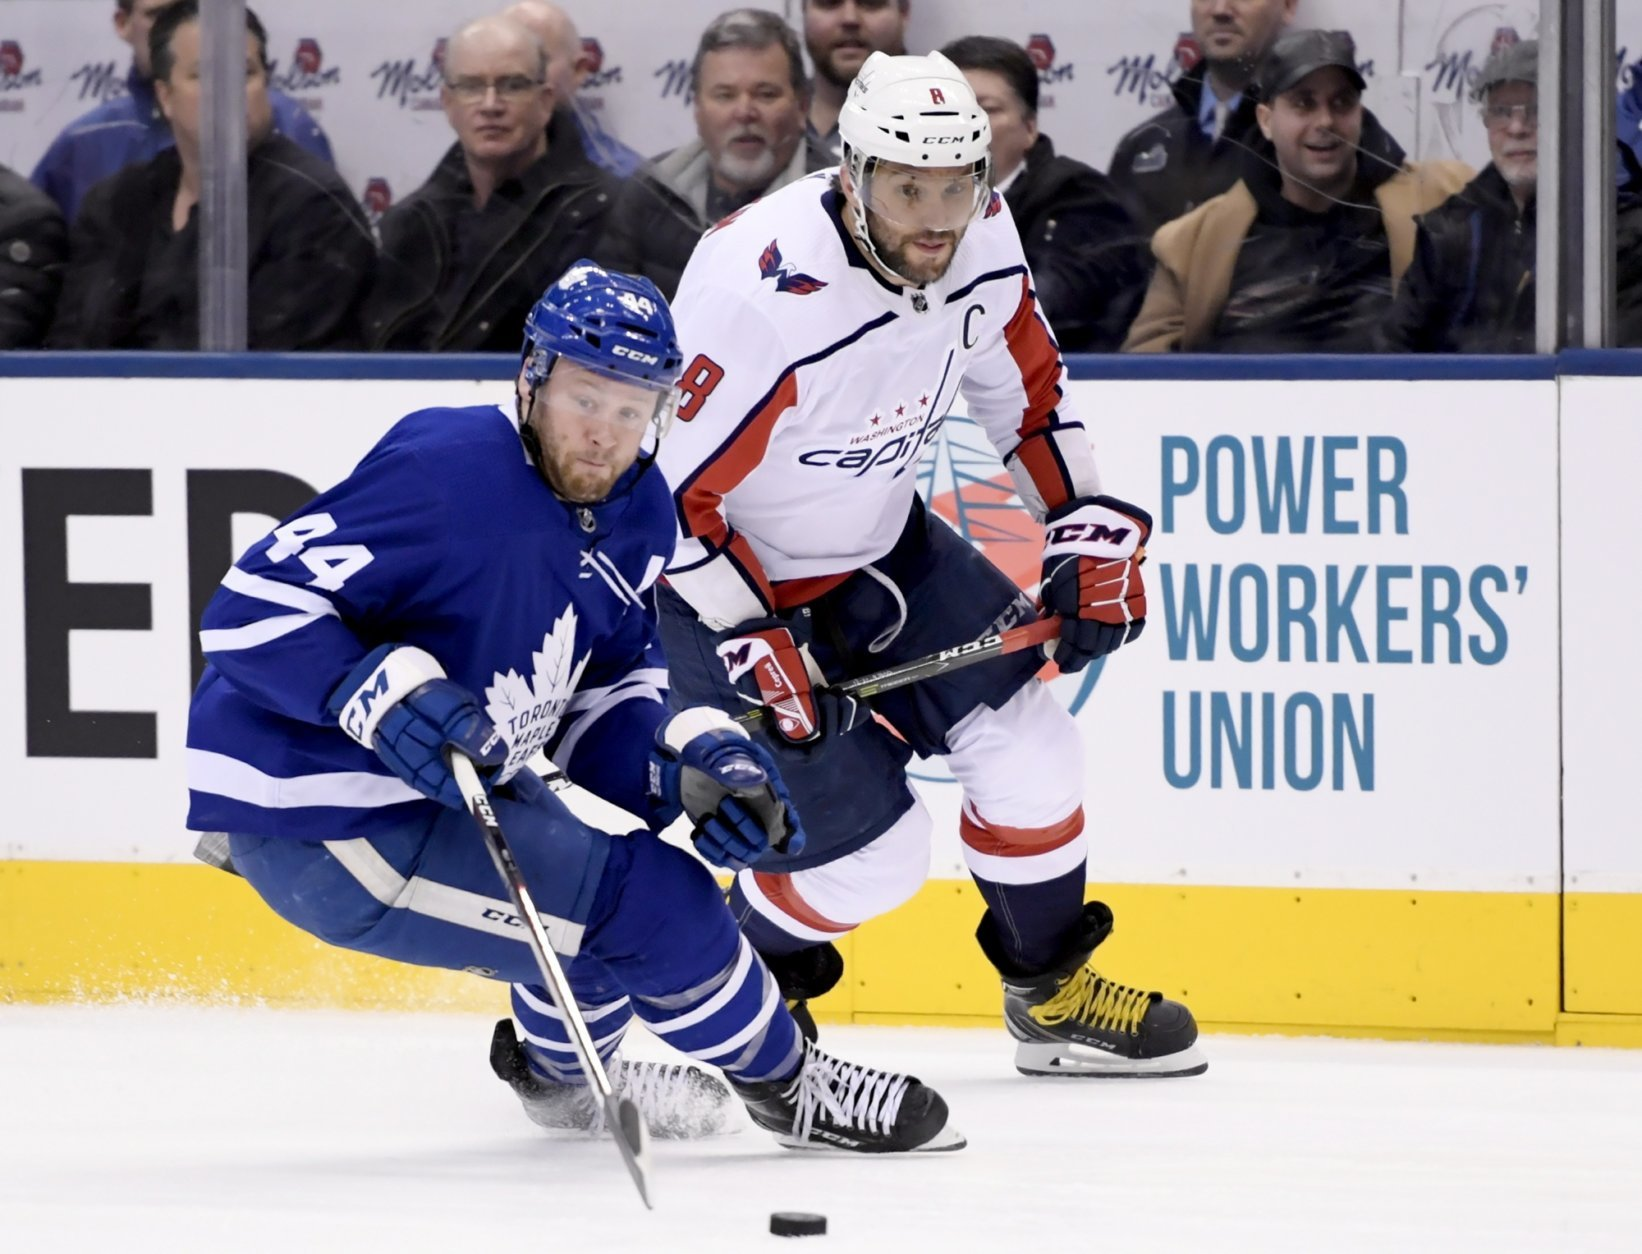 Washington Capitals left wing Alex Ovechkin (8) chases down Toronto Maple Leafs defenseman Morgan Rielly (44) during the first period of an NHL hockey game, Wednesday, Jan. 23, 2019, in Toronto. (Nathan Denette/The Canadian Press via AP)